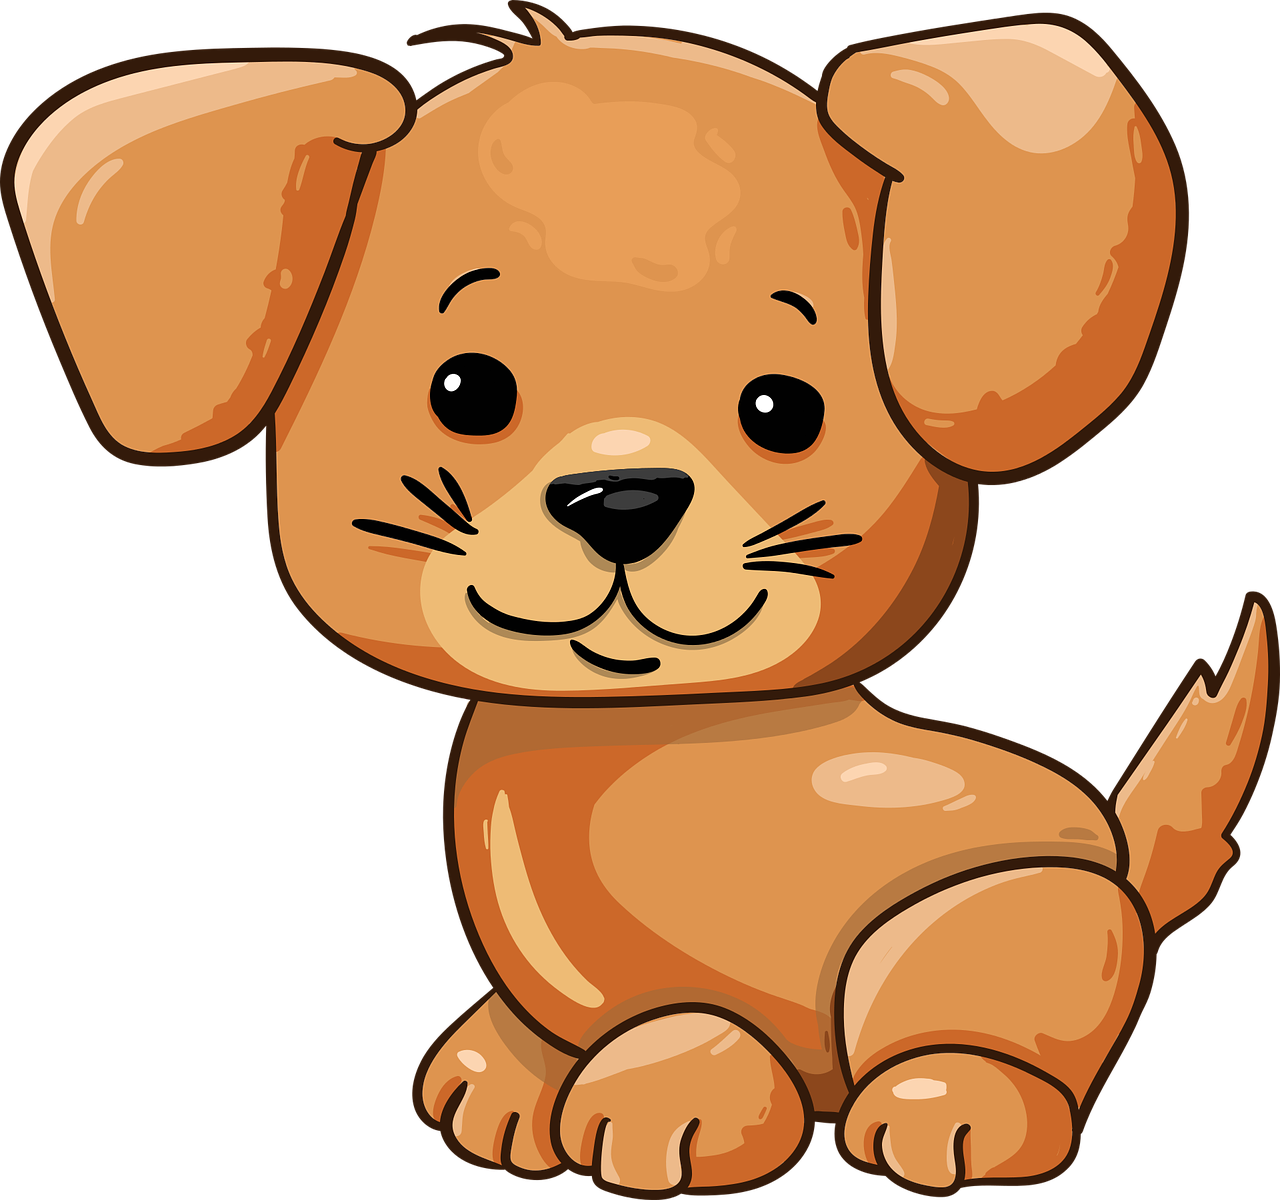 Dog Puppy Cute Free Vector Graphic On Pixabay